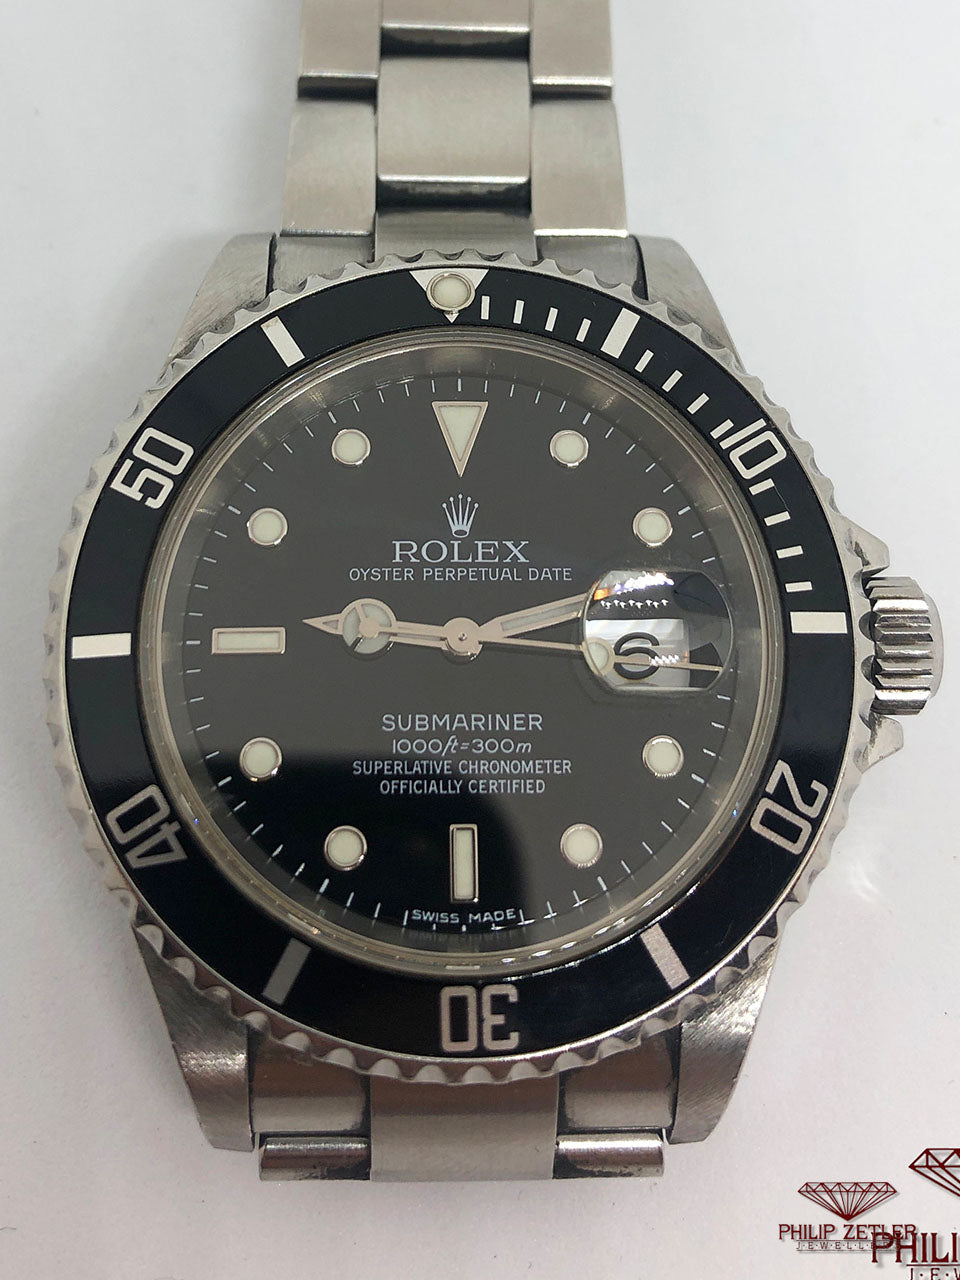 Rolex Submariner Date (2007) Reference 16610